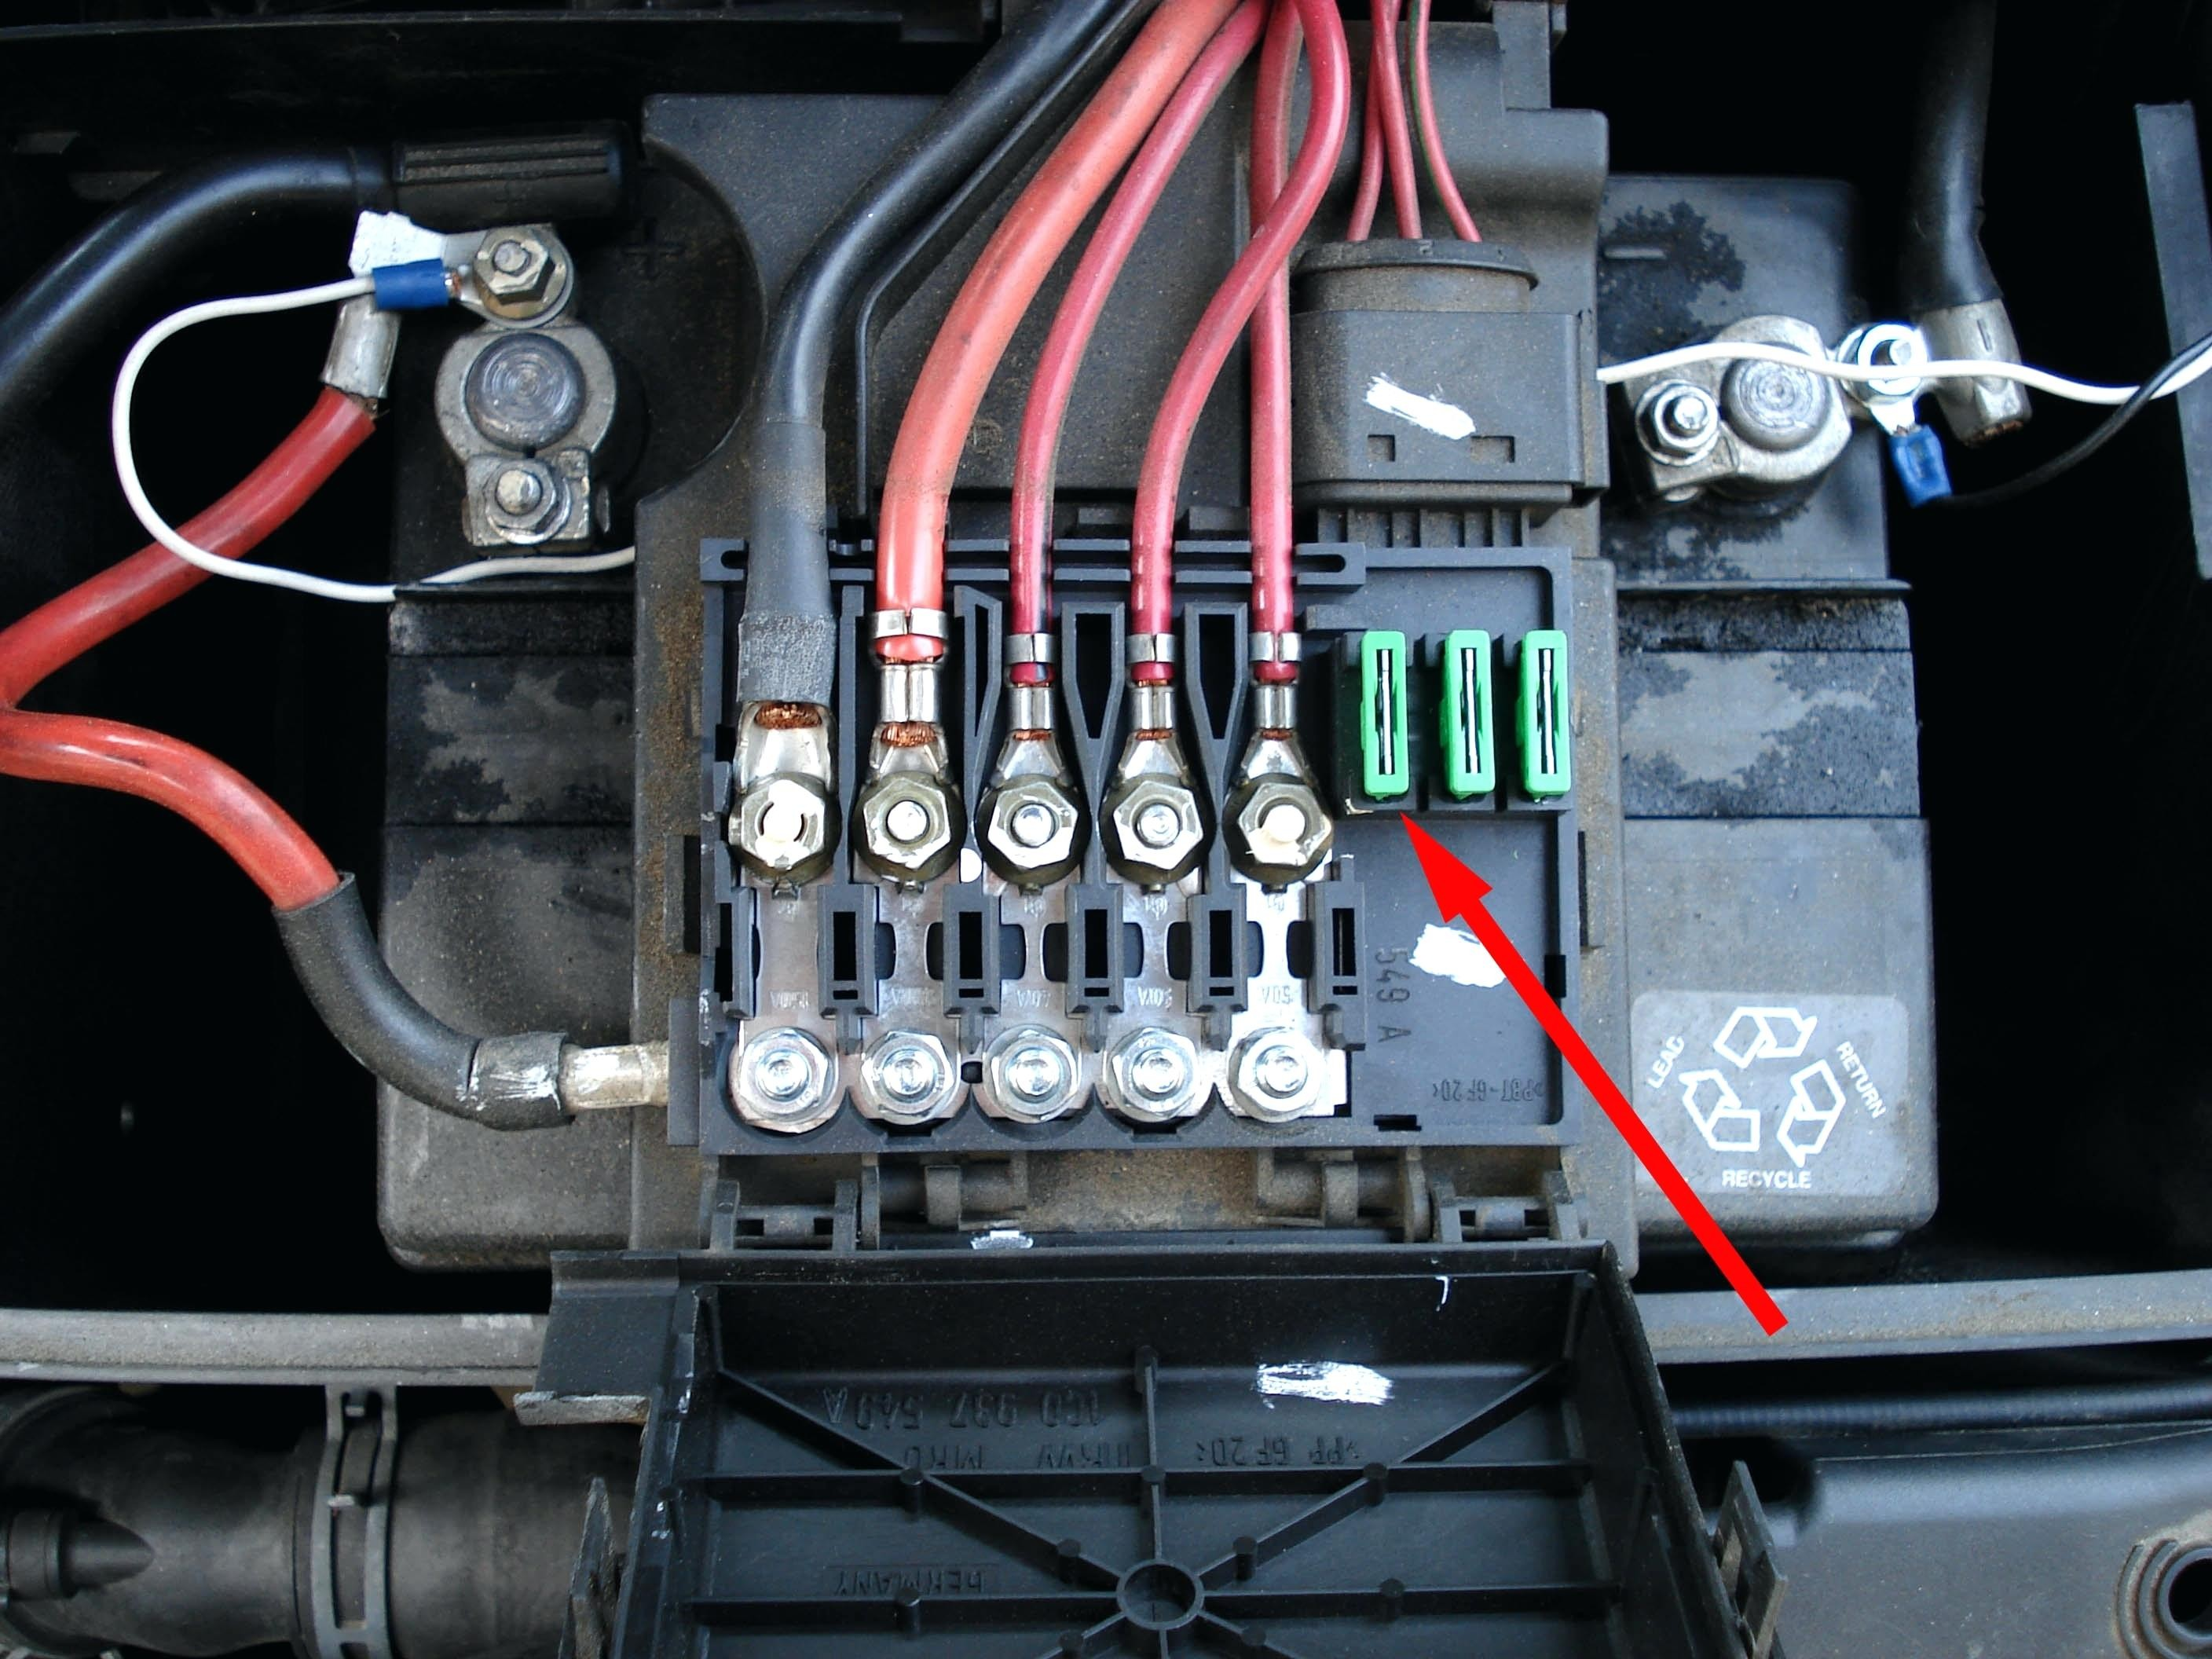 2004 Golf Fuse Box Cable Wiring Diagrams Schematic Vw Jetta Diagram 2000 Library Auto Tap Connectors